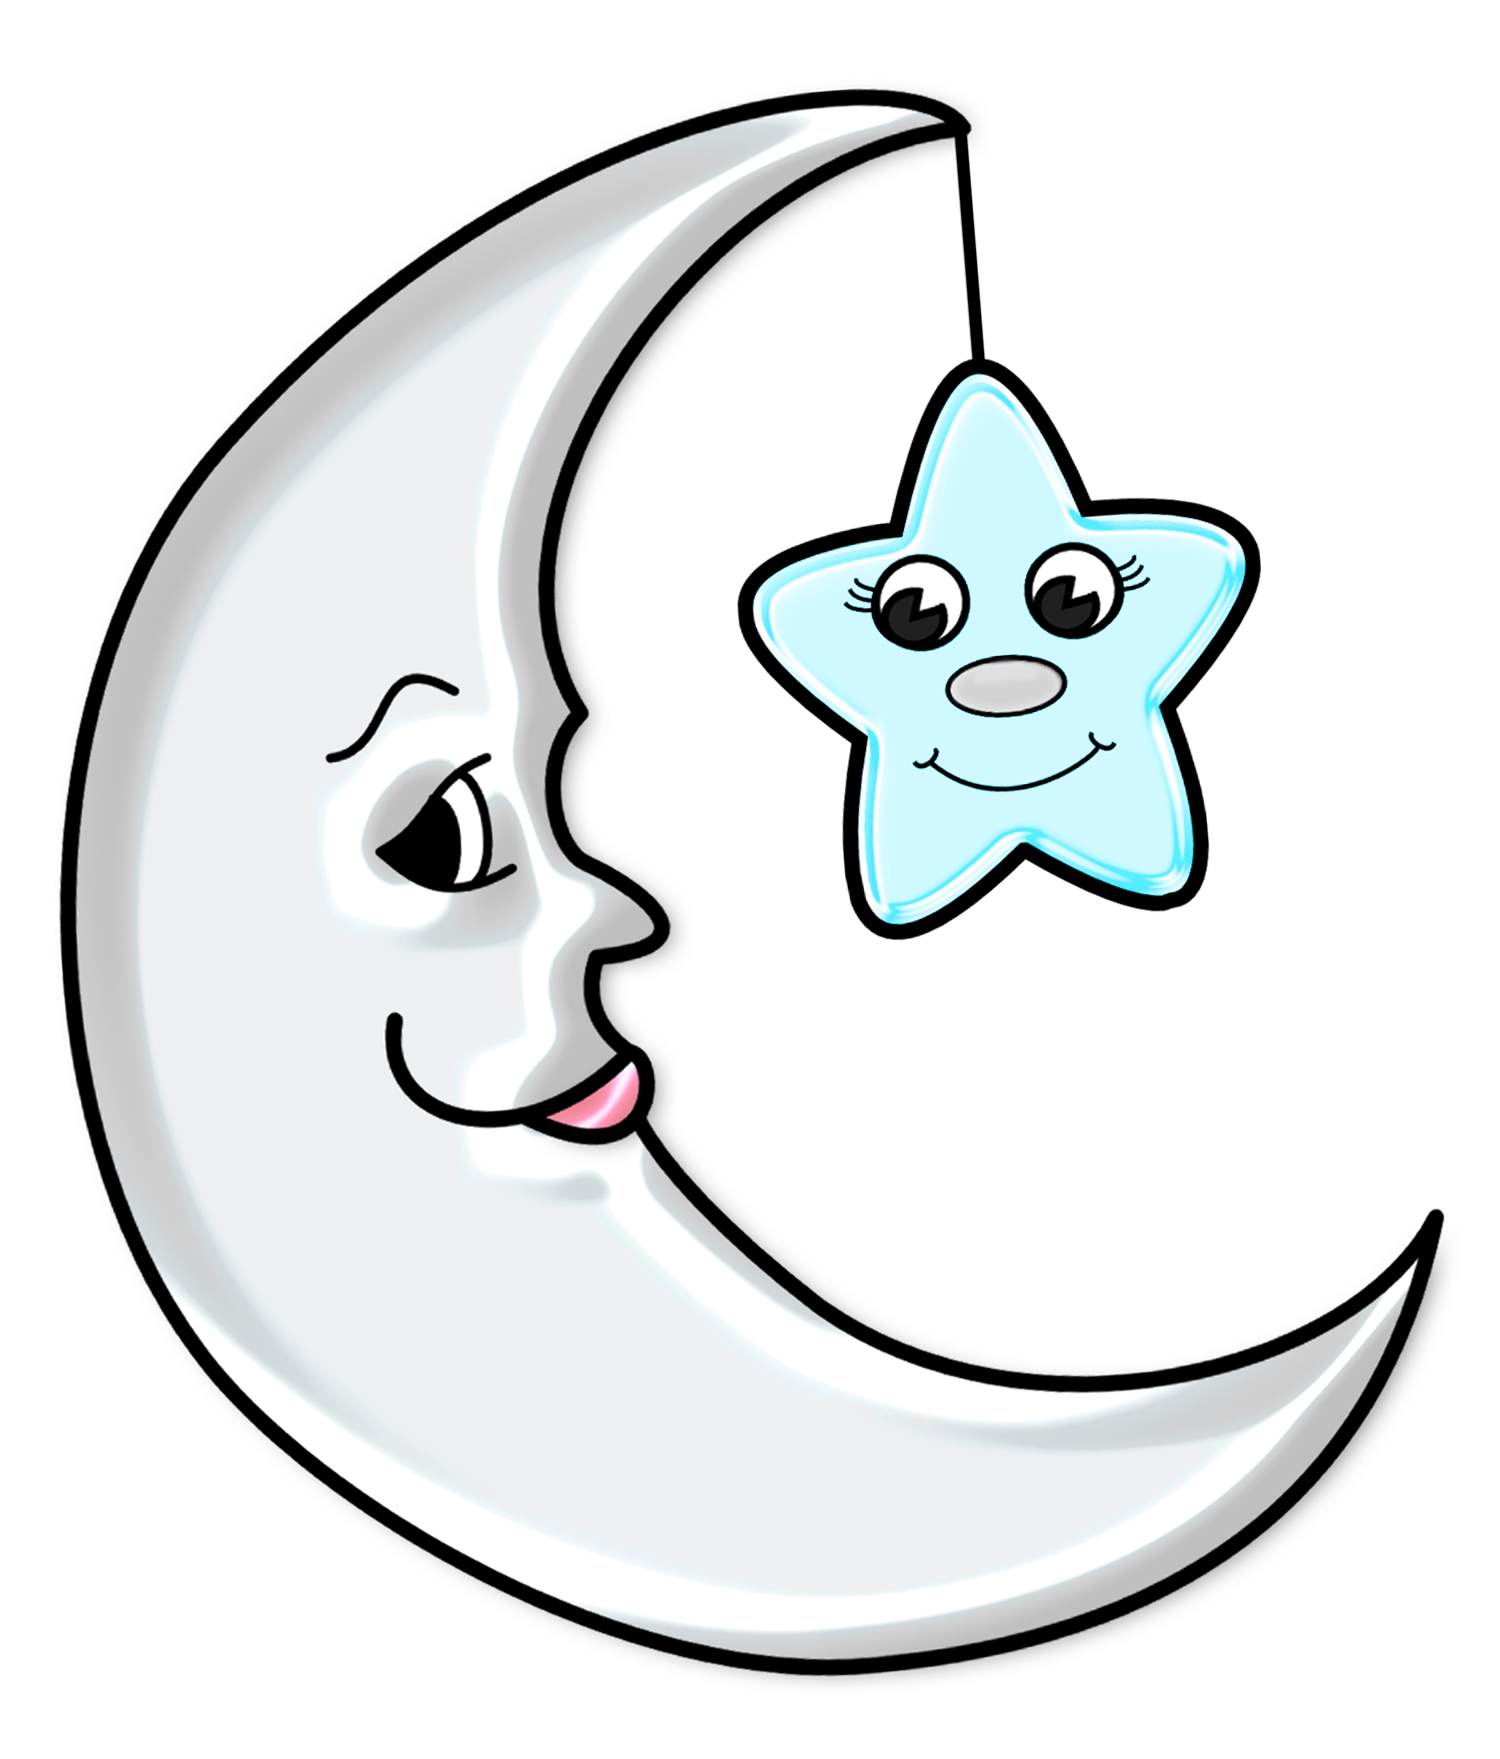 1500x1759 Cute Moon With Star Transparent Png Pictureu200b Gallery